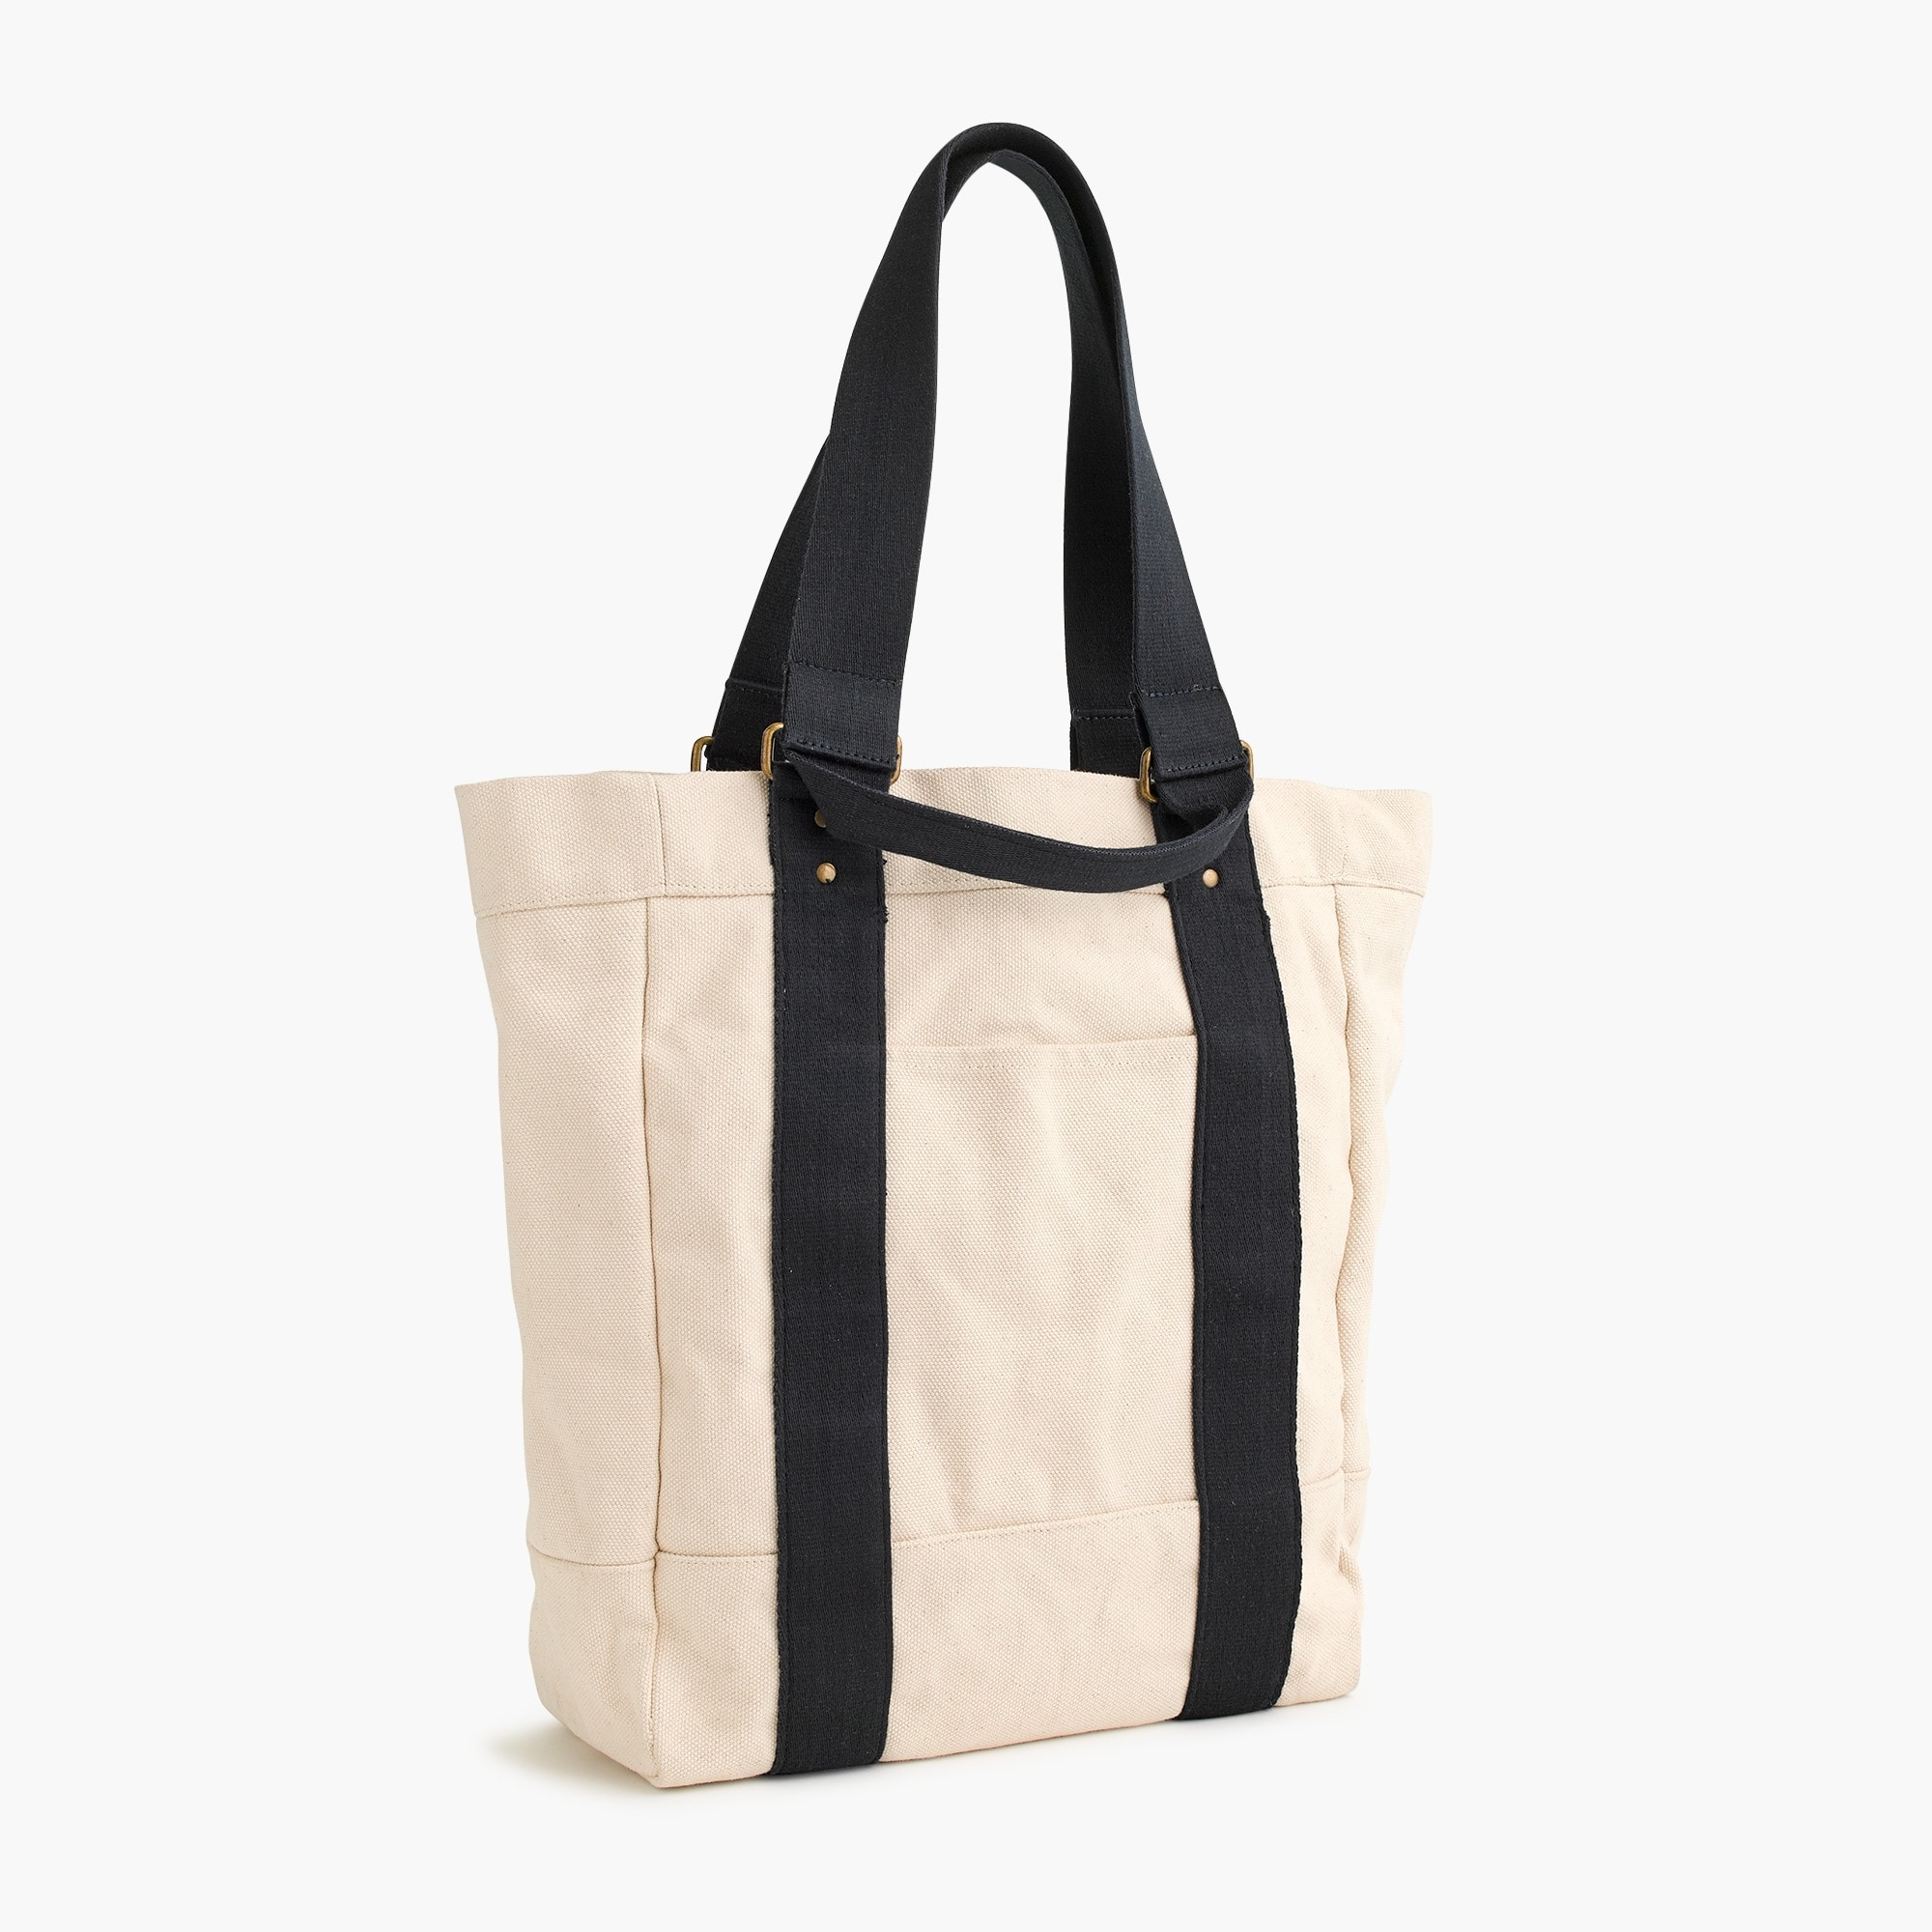 mens Rugged canvas tote bag